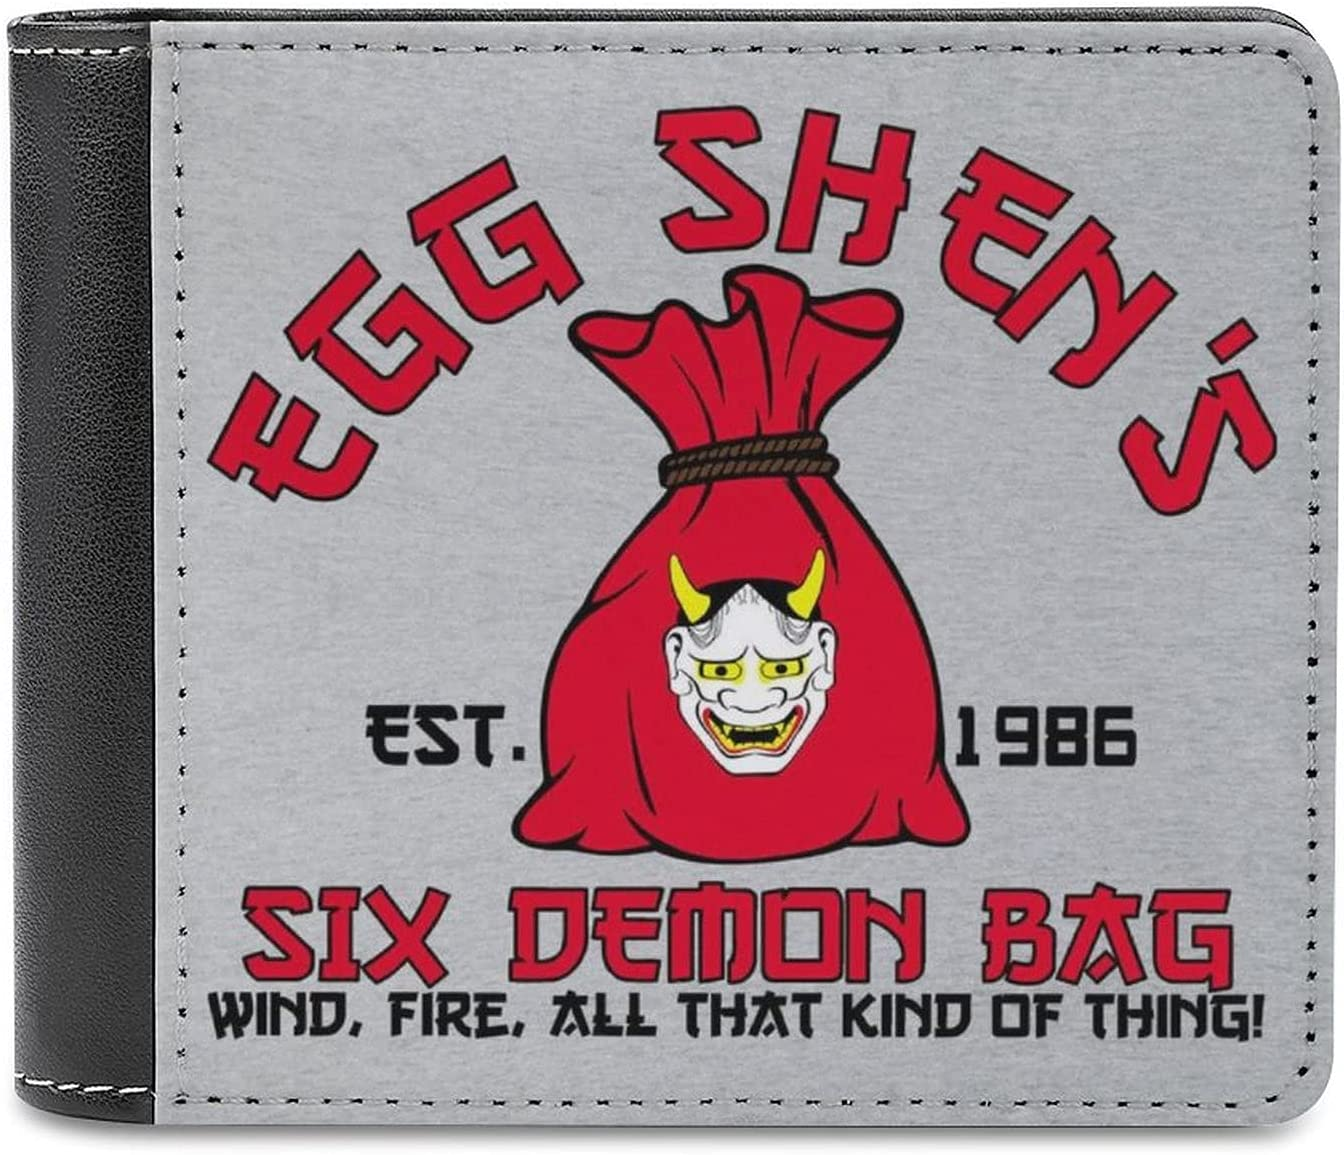 Egg Shens Six Demon Bag Big Trouble In Little China Leather bi-fold wallet, large-capacity credit card holder, comfortable and delicate touch